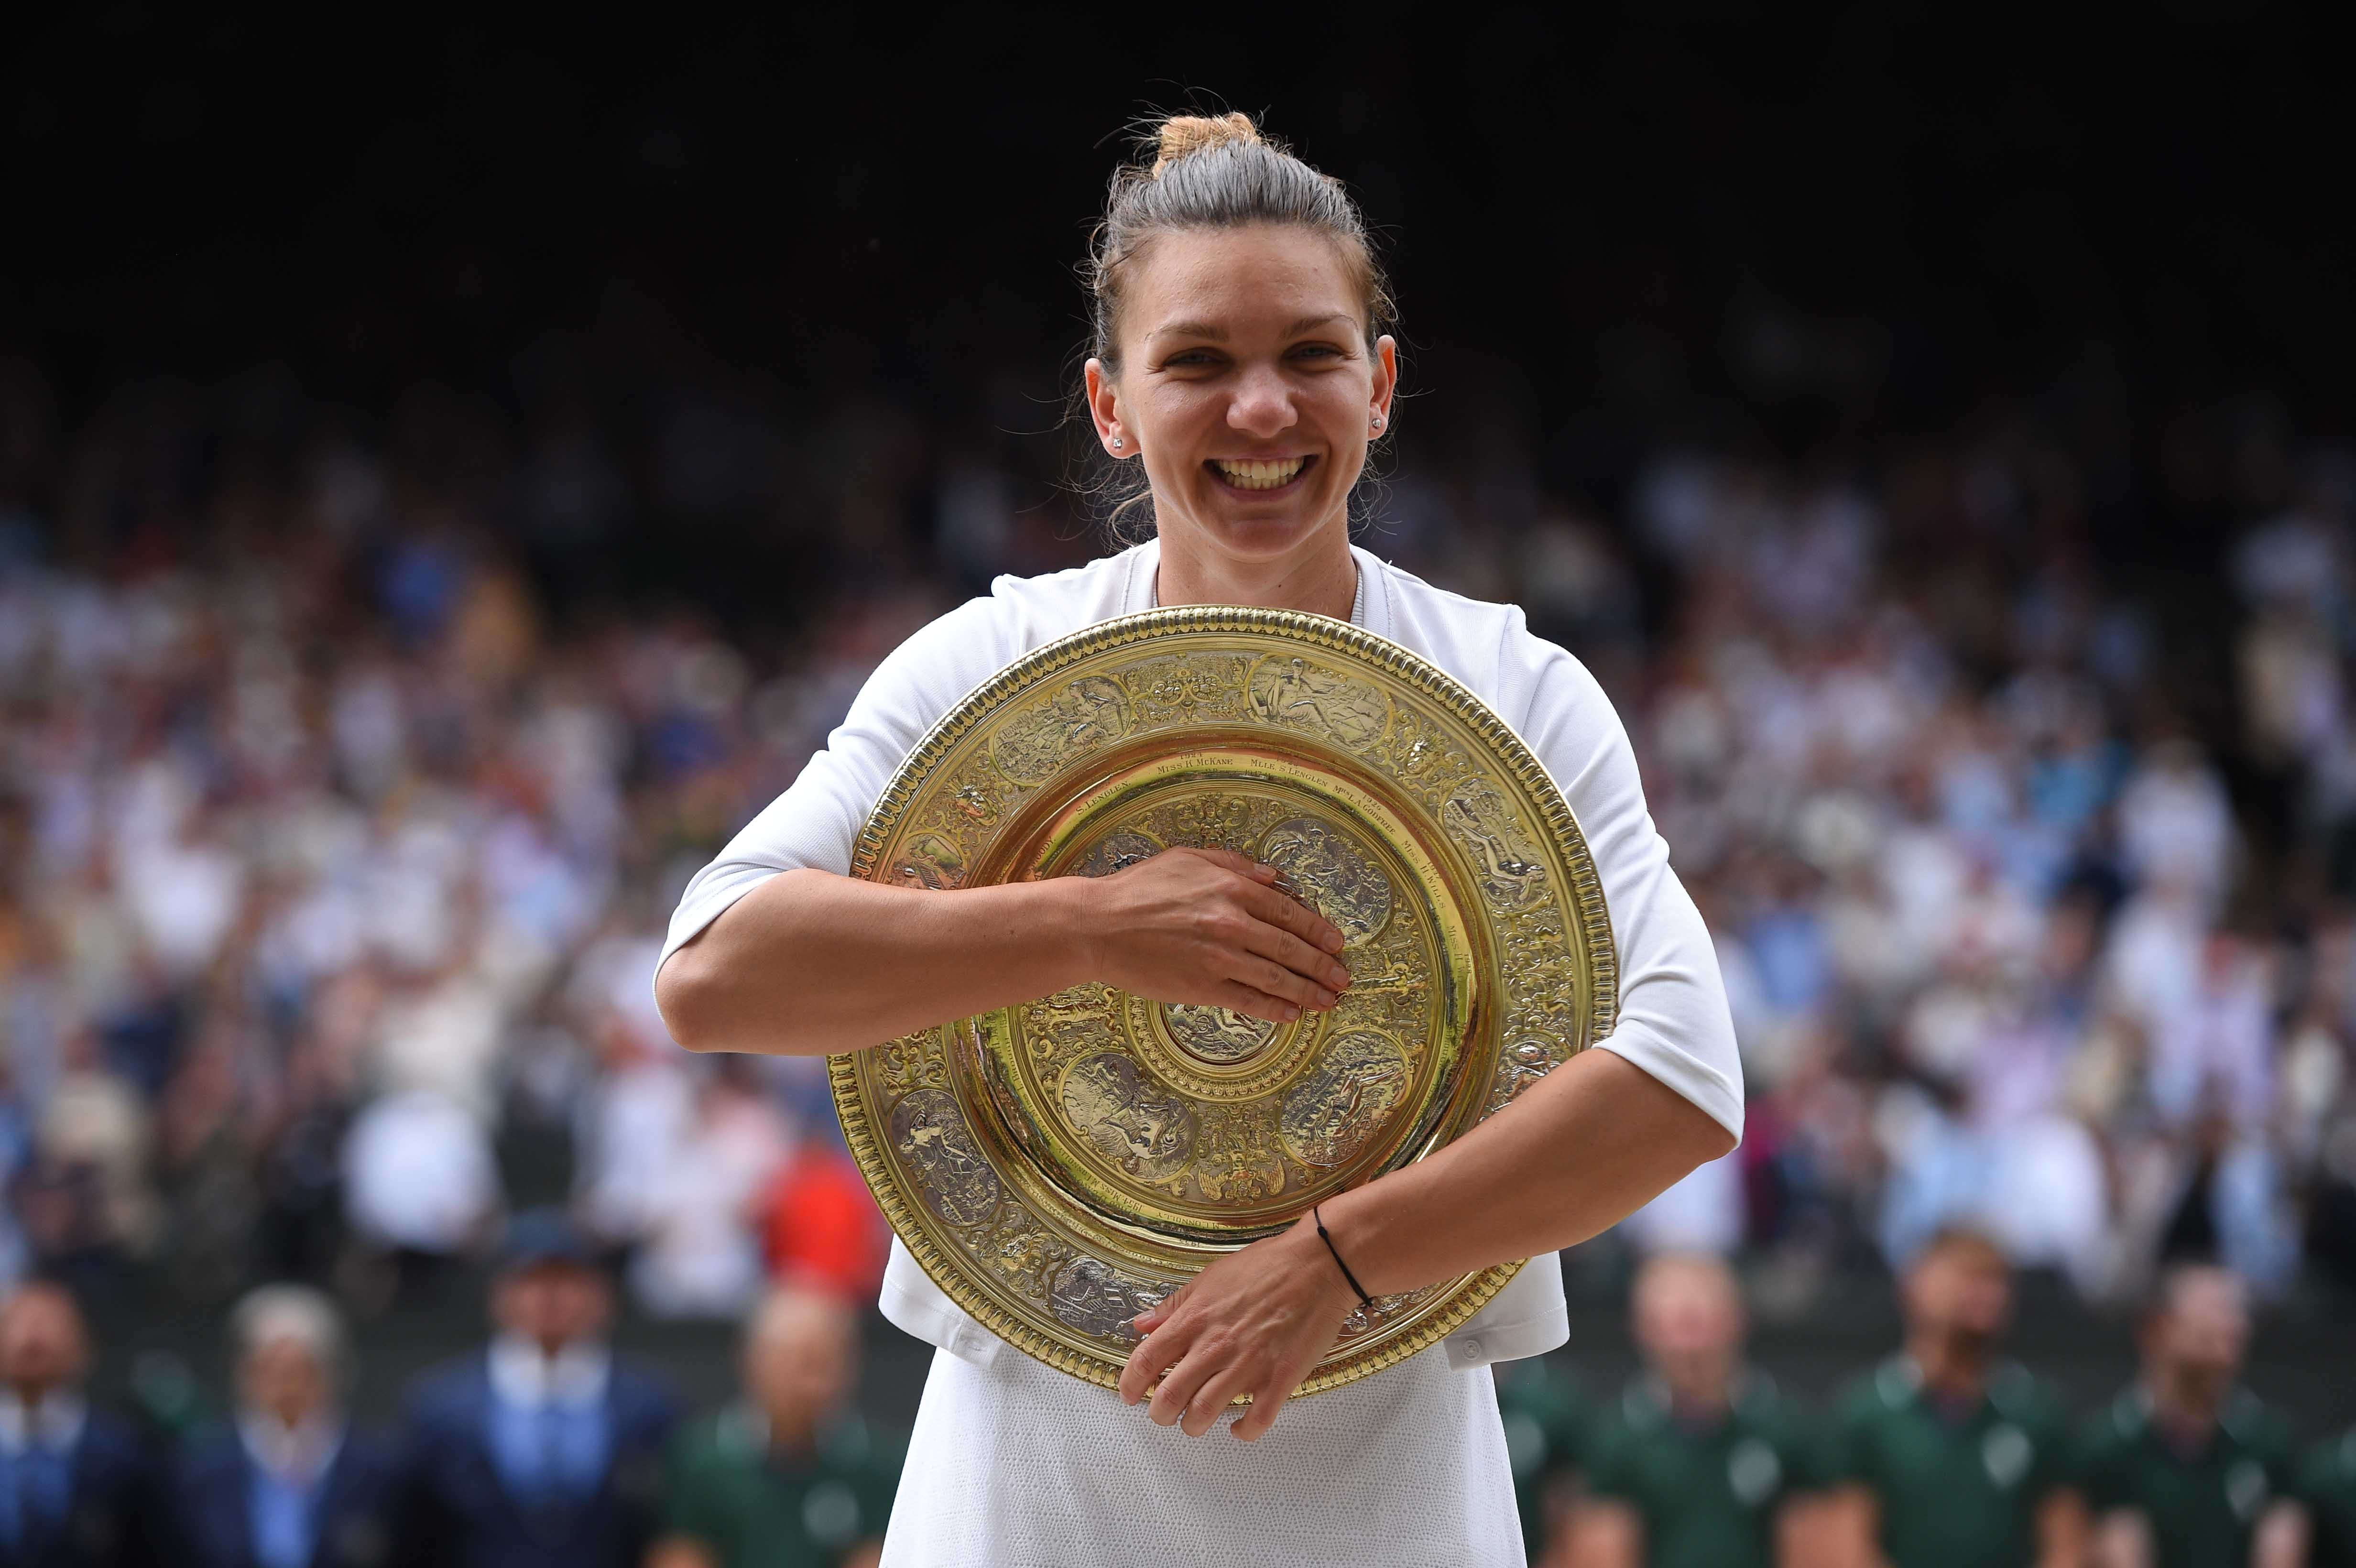 Simona Halep smiling with her Wimbledon 2019 trophy